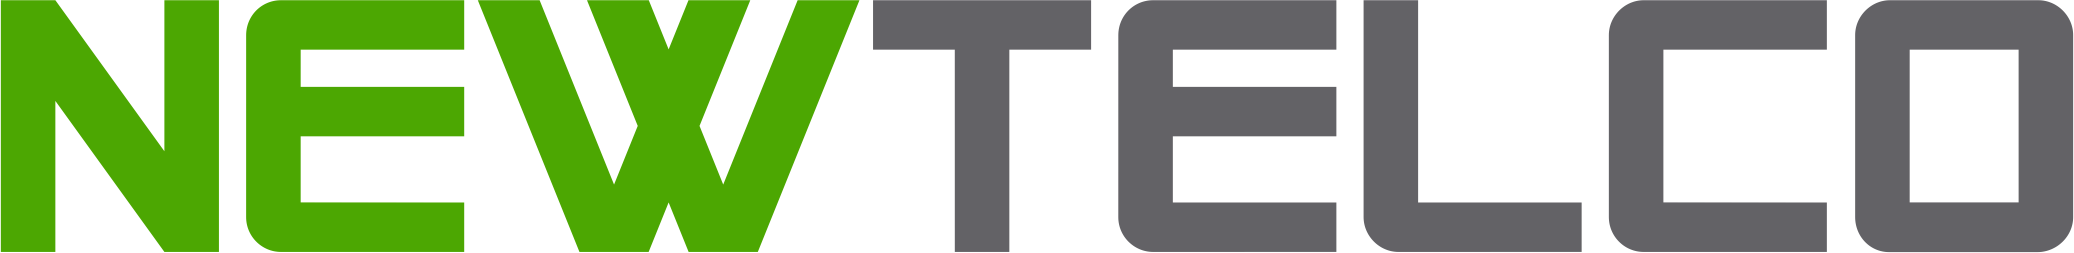 NT NEW LOGO 2016.png